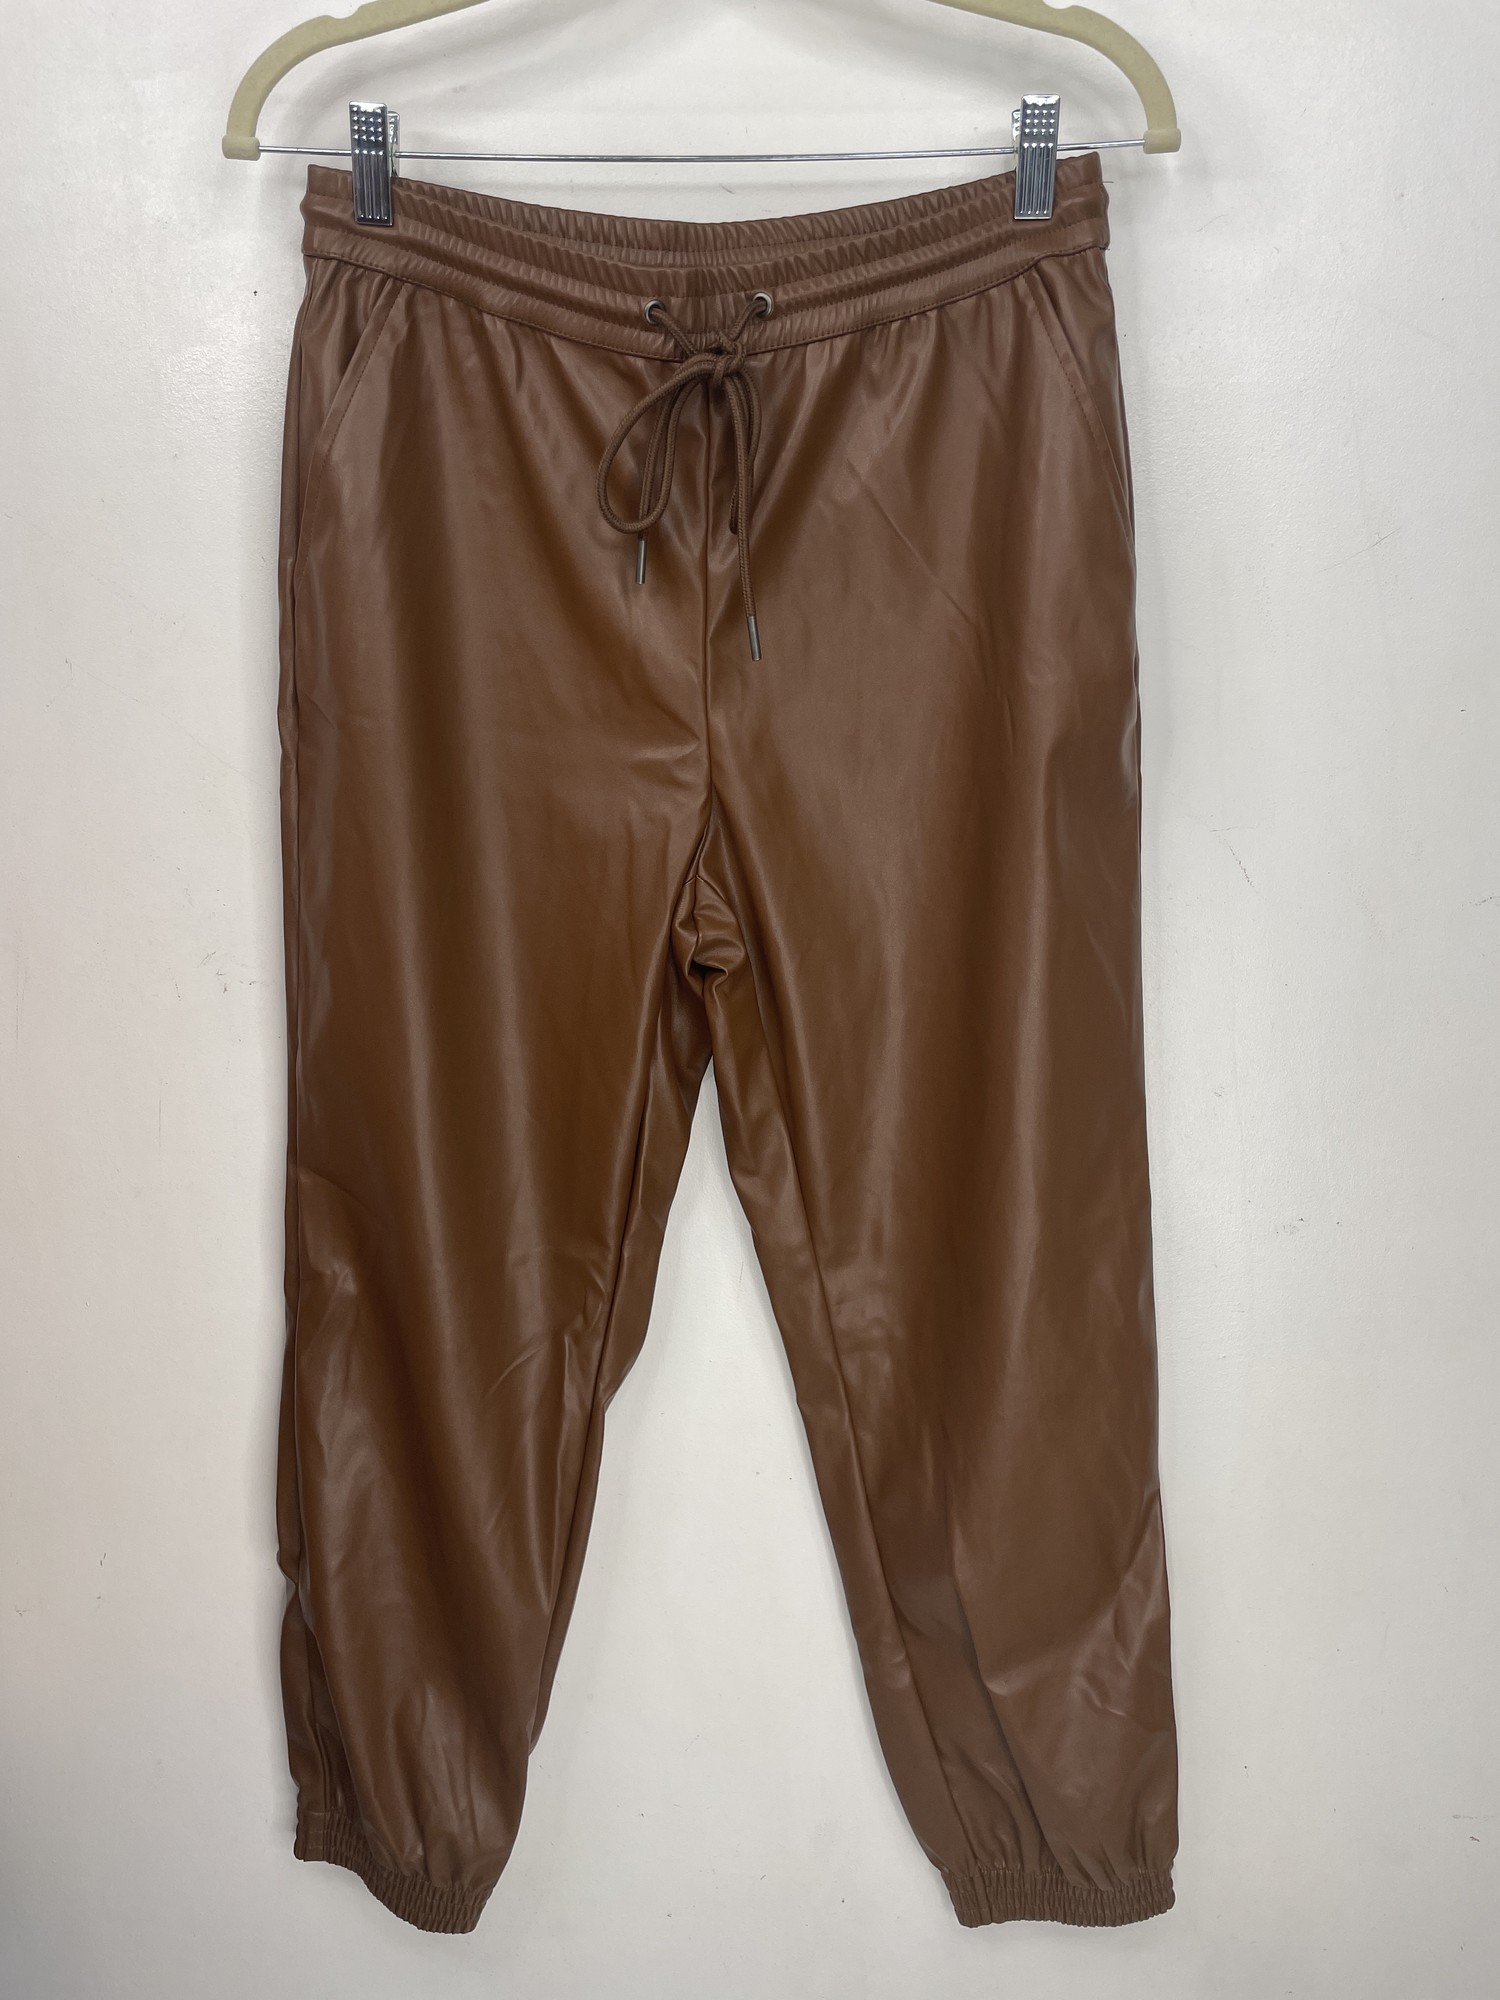 New Day Pants, Brown, Size: S